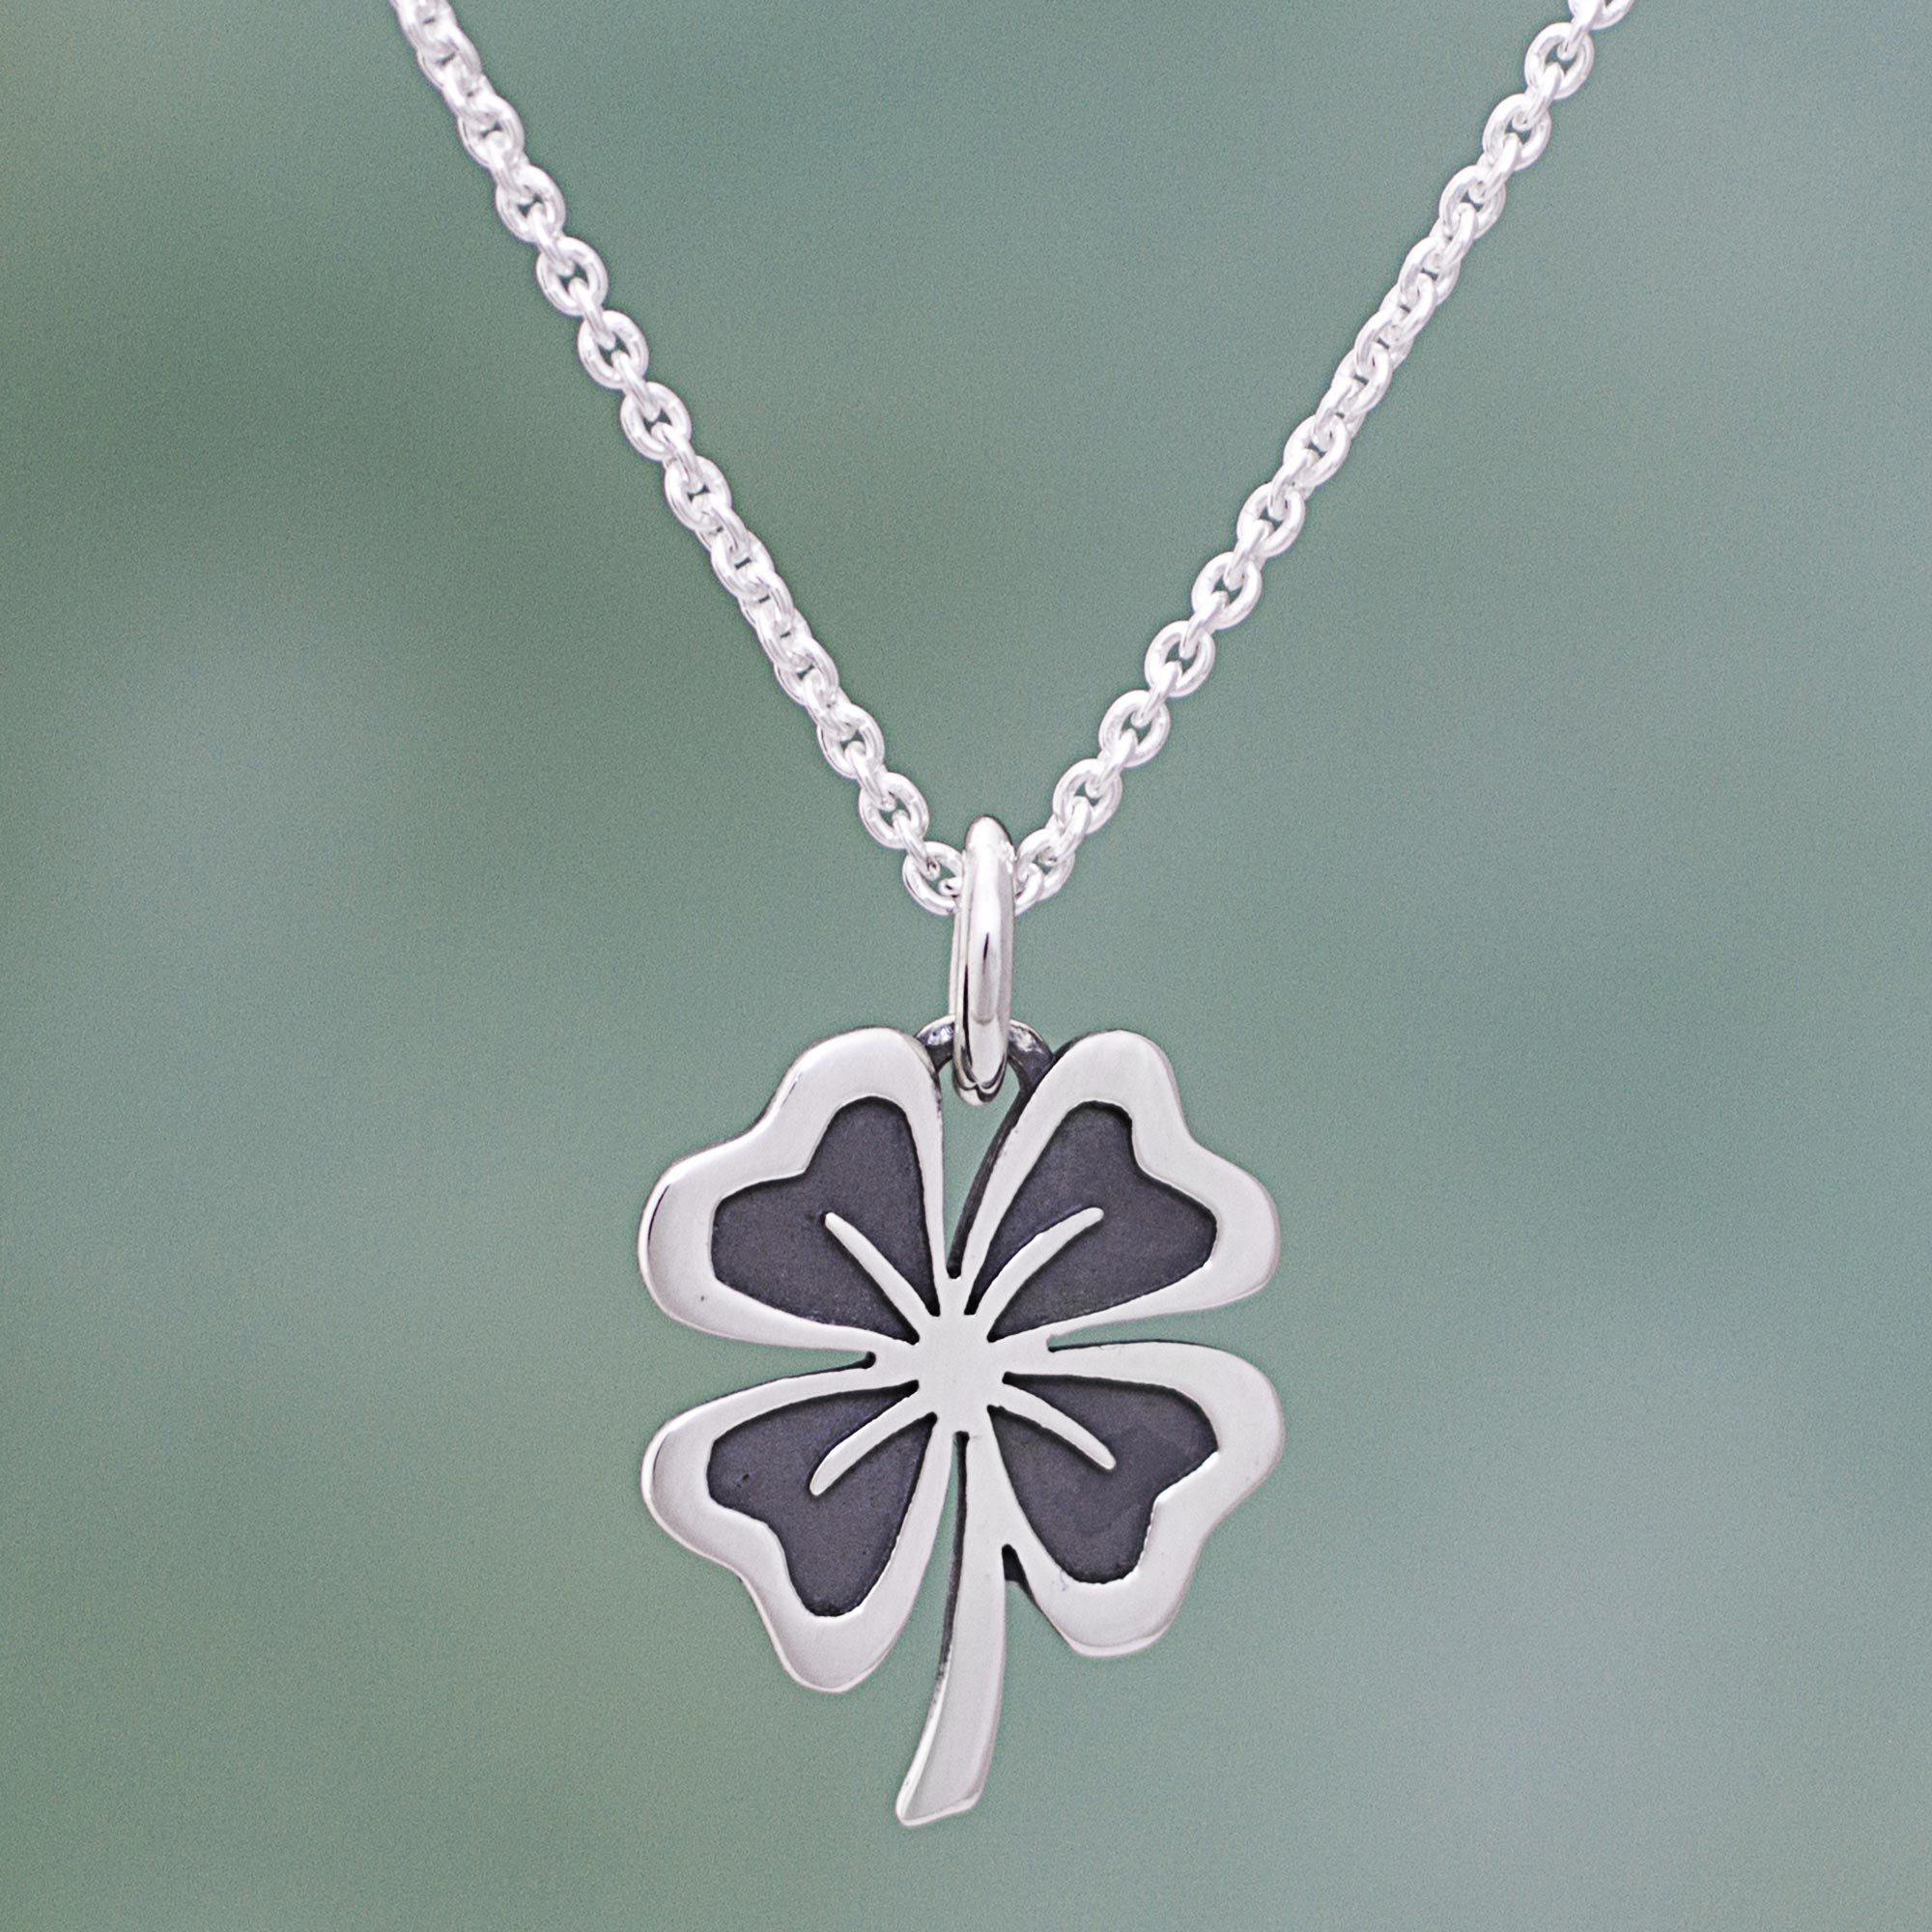 Sterling silver clover pendant necklace from mexico suave clover sterling silver clover pendant necklace from mexico suave clover novica izmirmasajfo